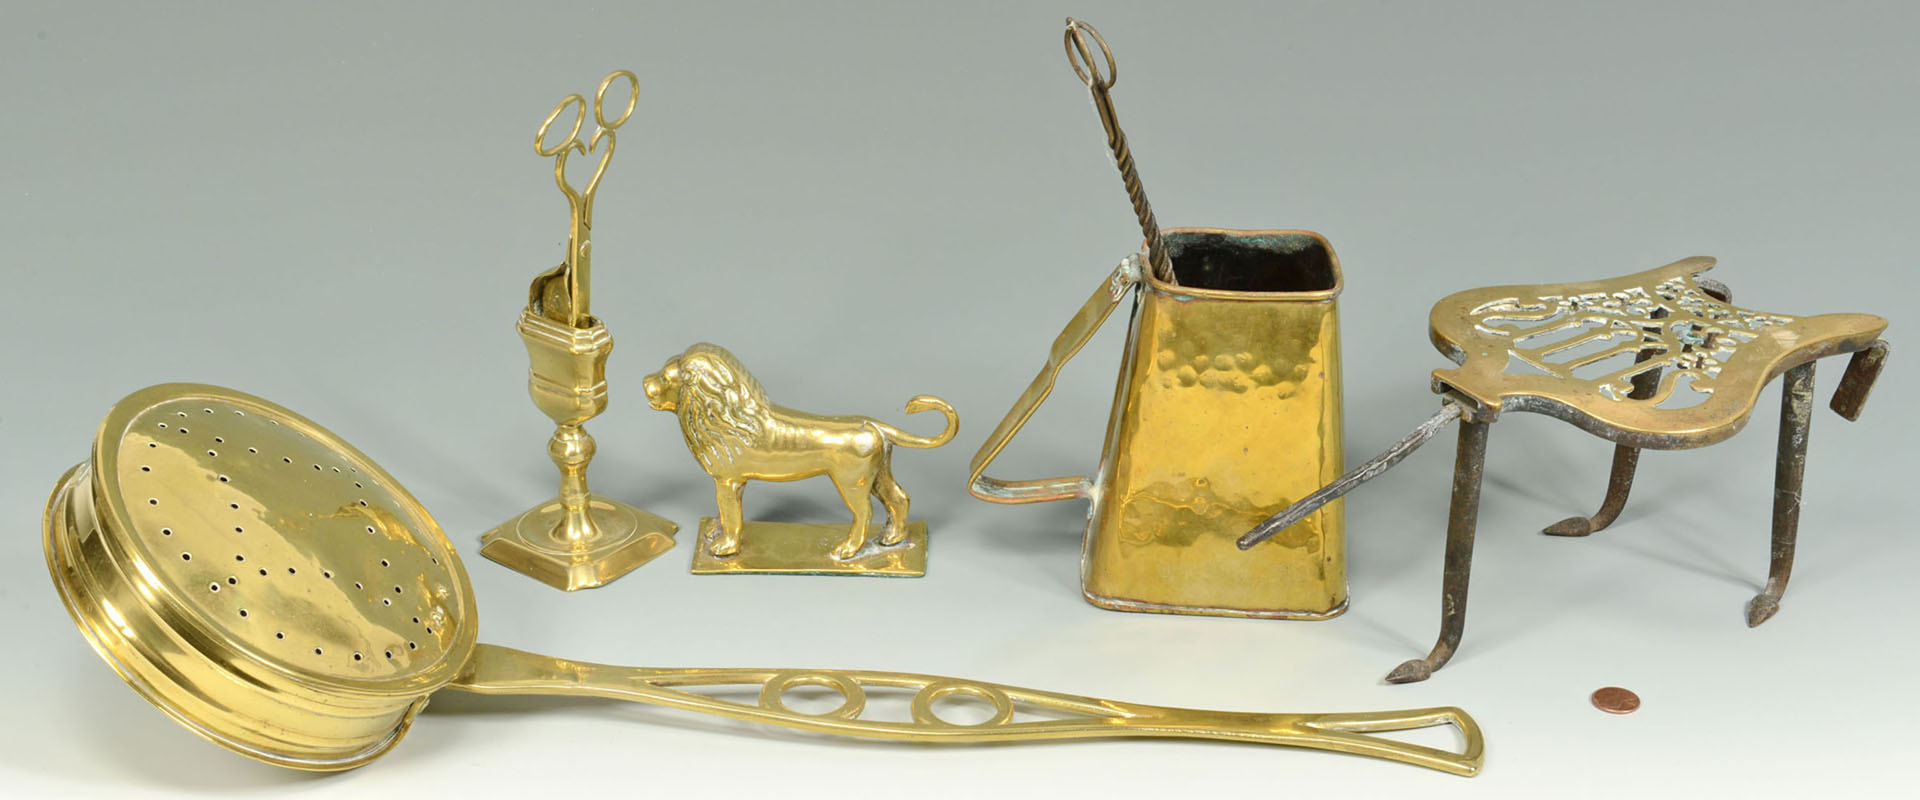 Lot 585: Grouping of Brass Accessories, 6 items total